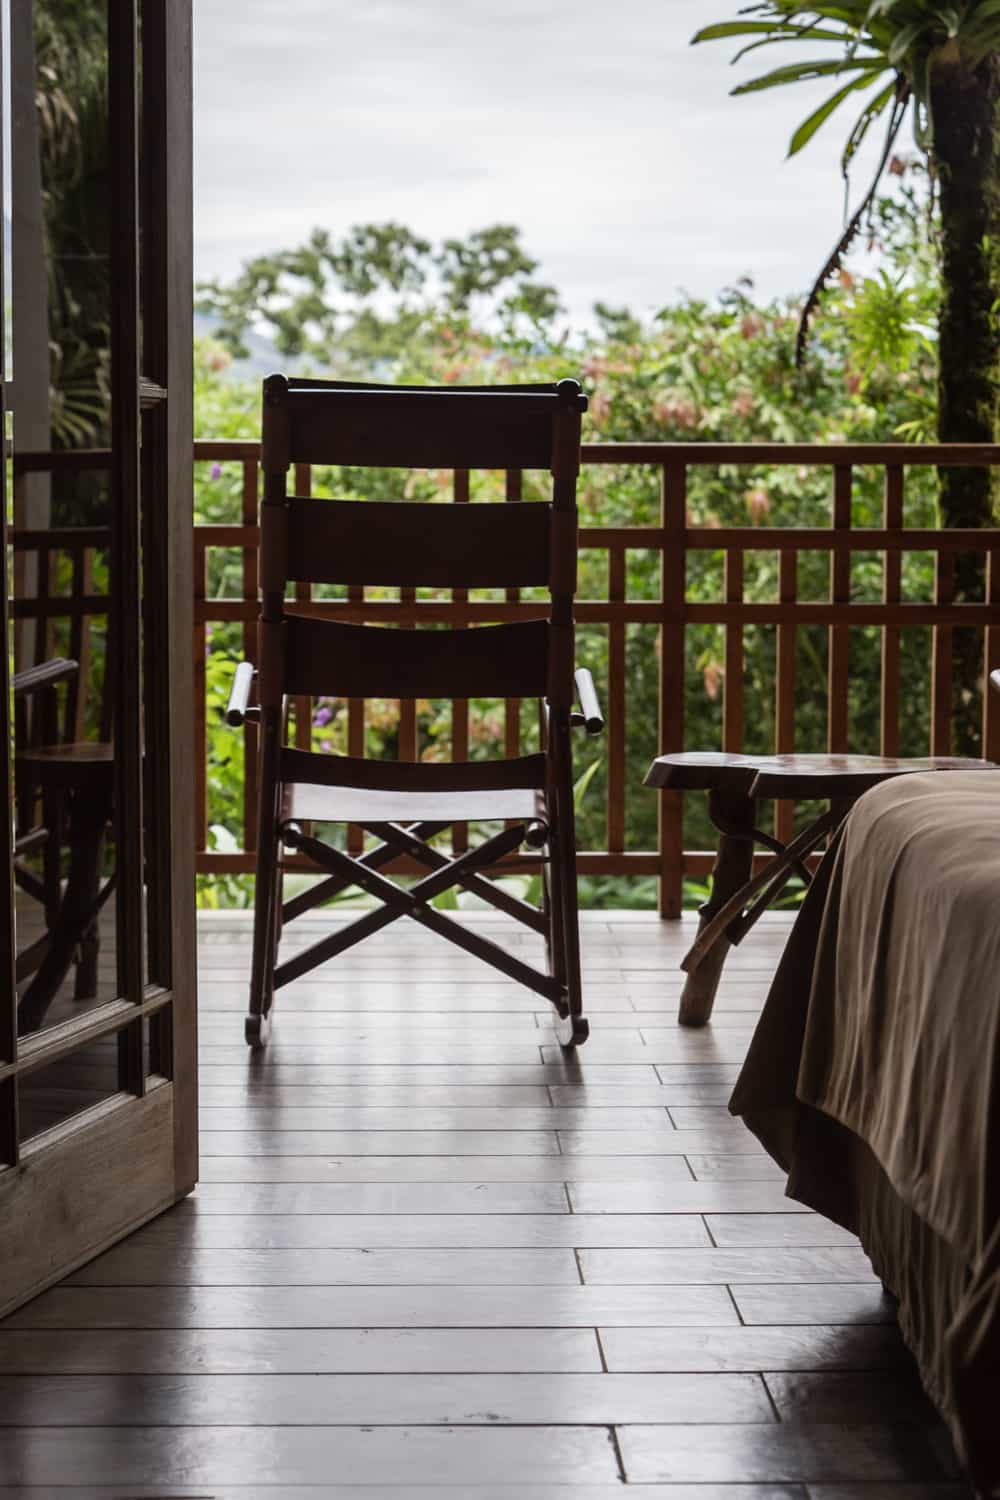 View of guest room balcony for wedding guests at La Fortuna Resort.